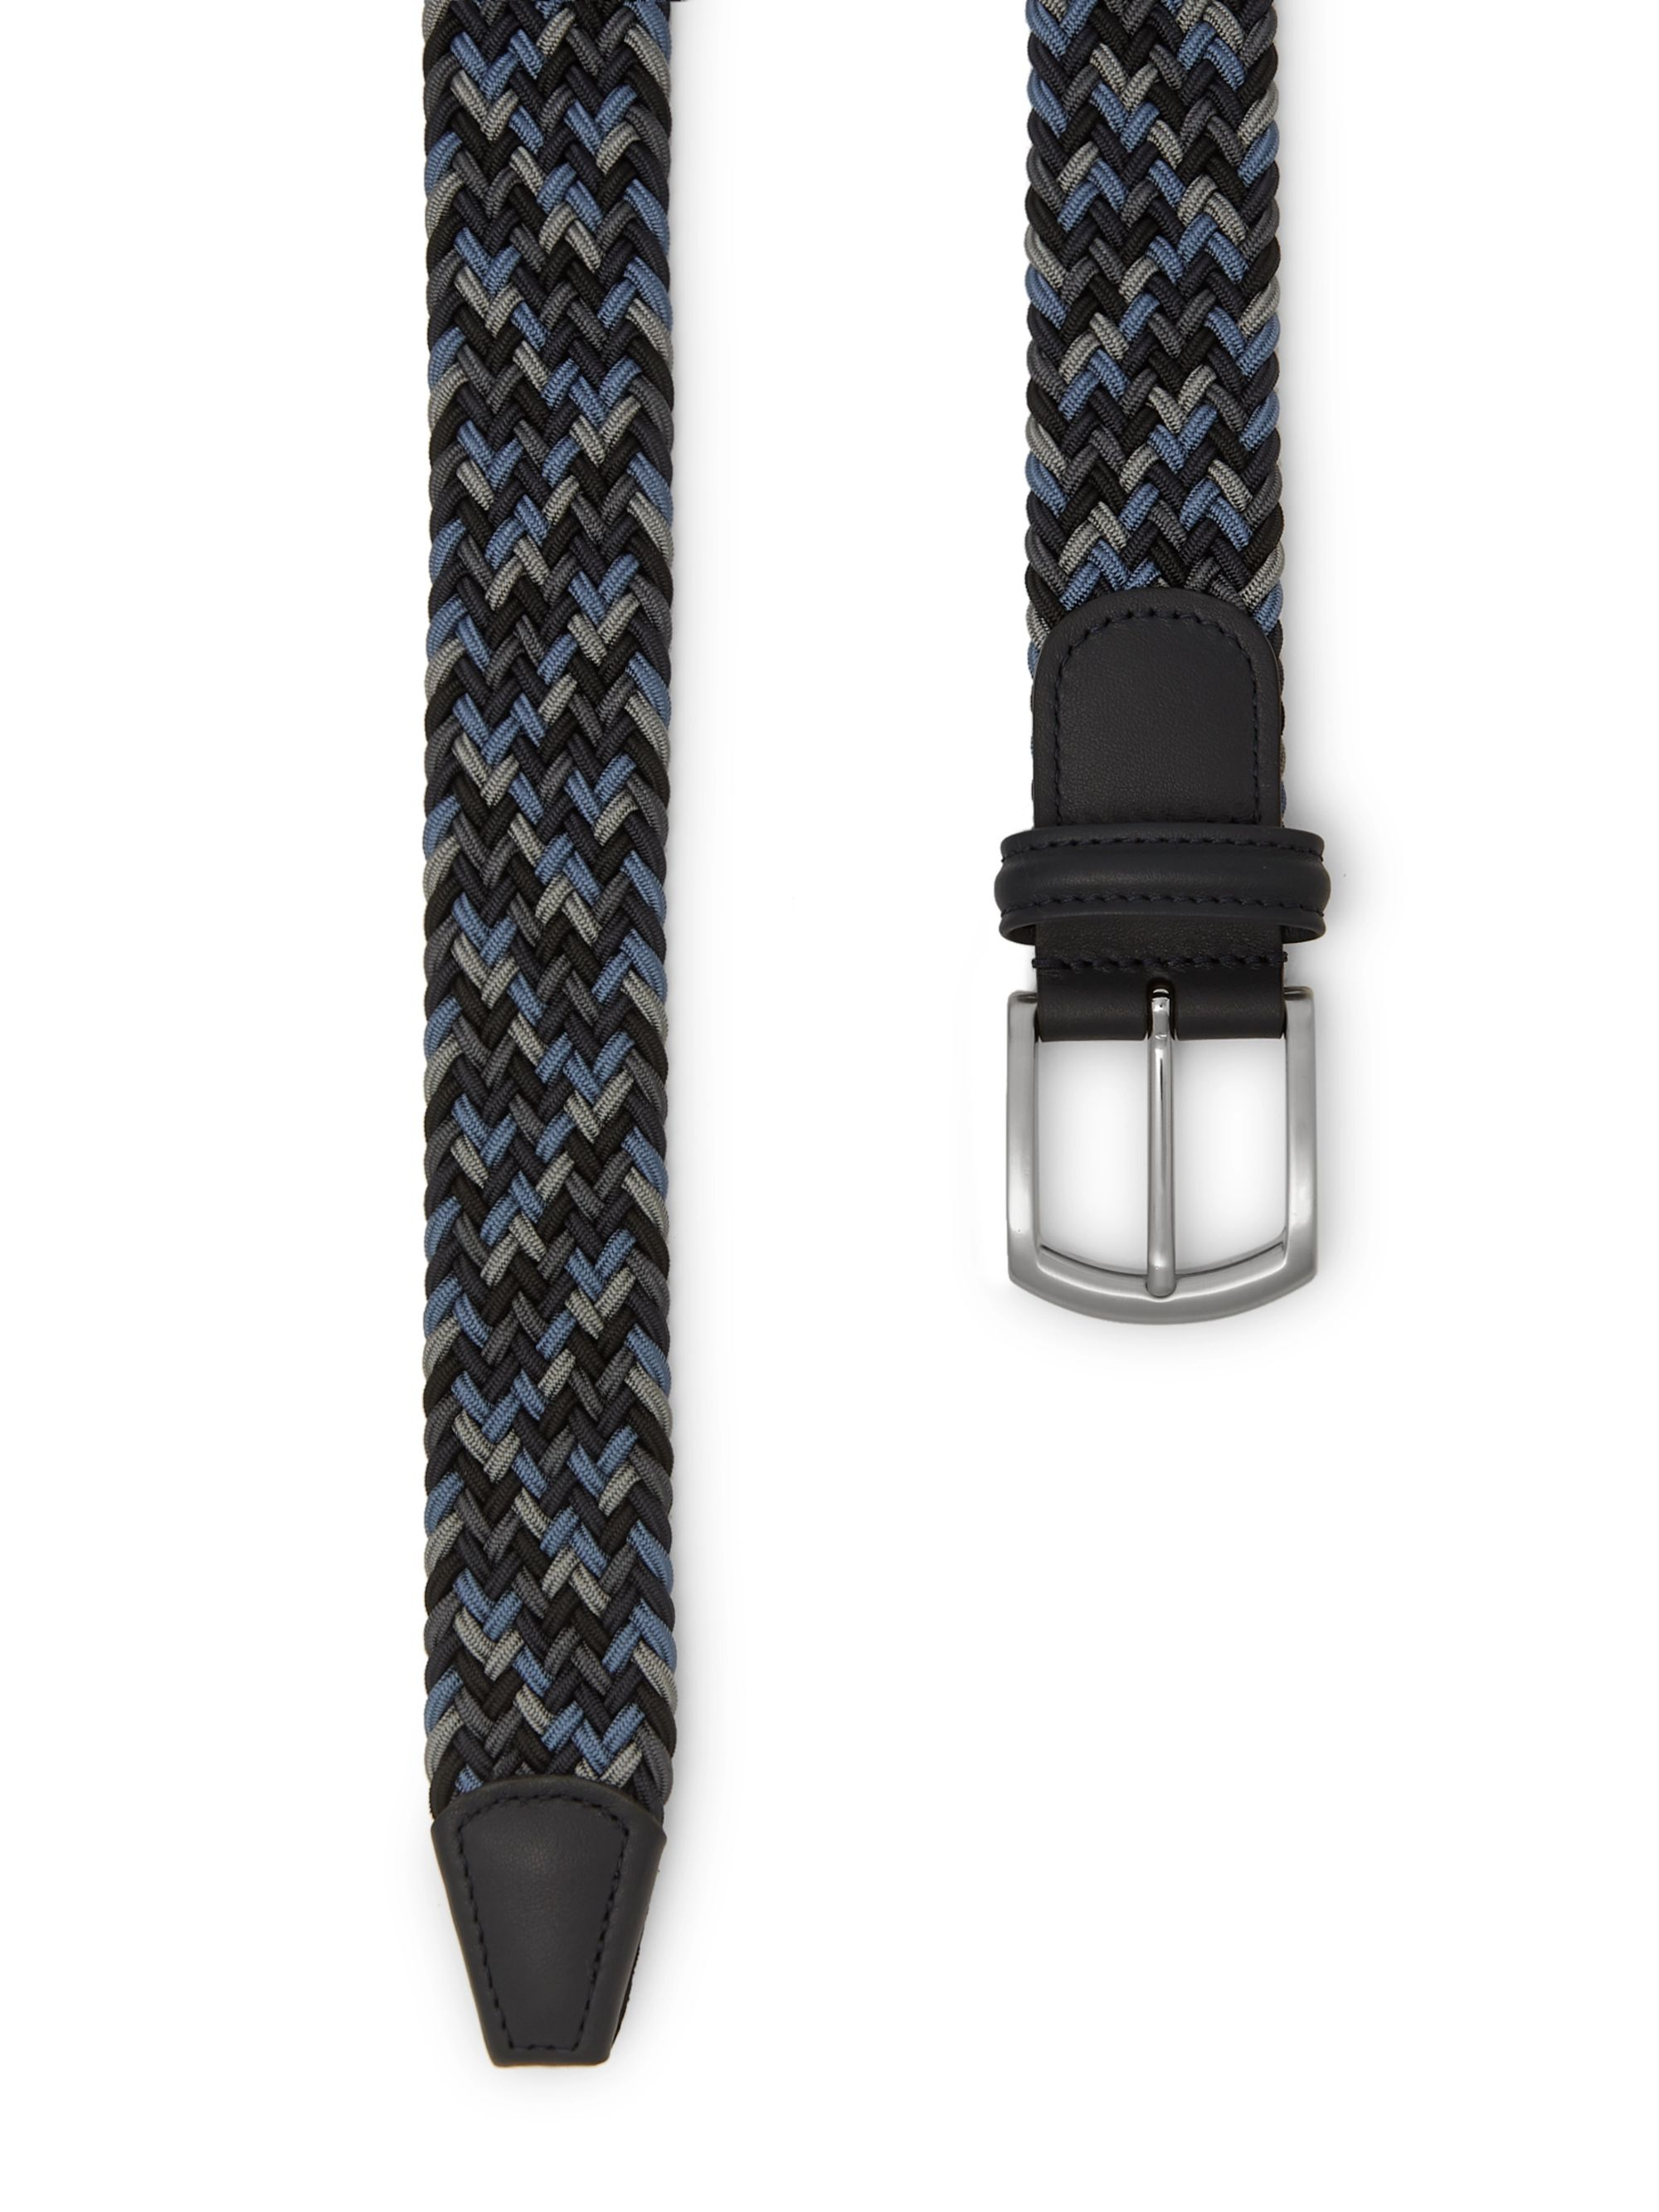 Anderson's 3.5 Navy Leather-Trimmed Woven Elastic Belt